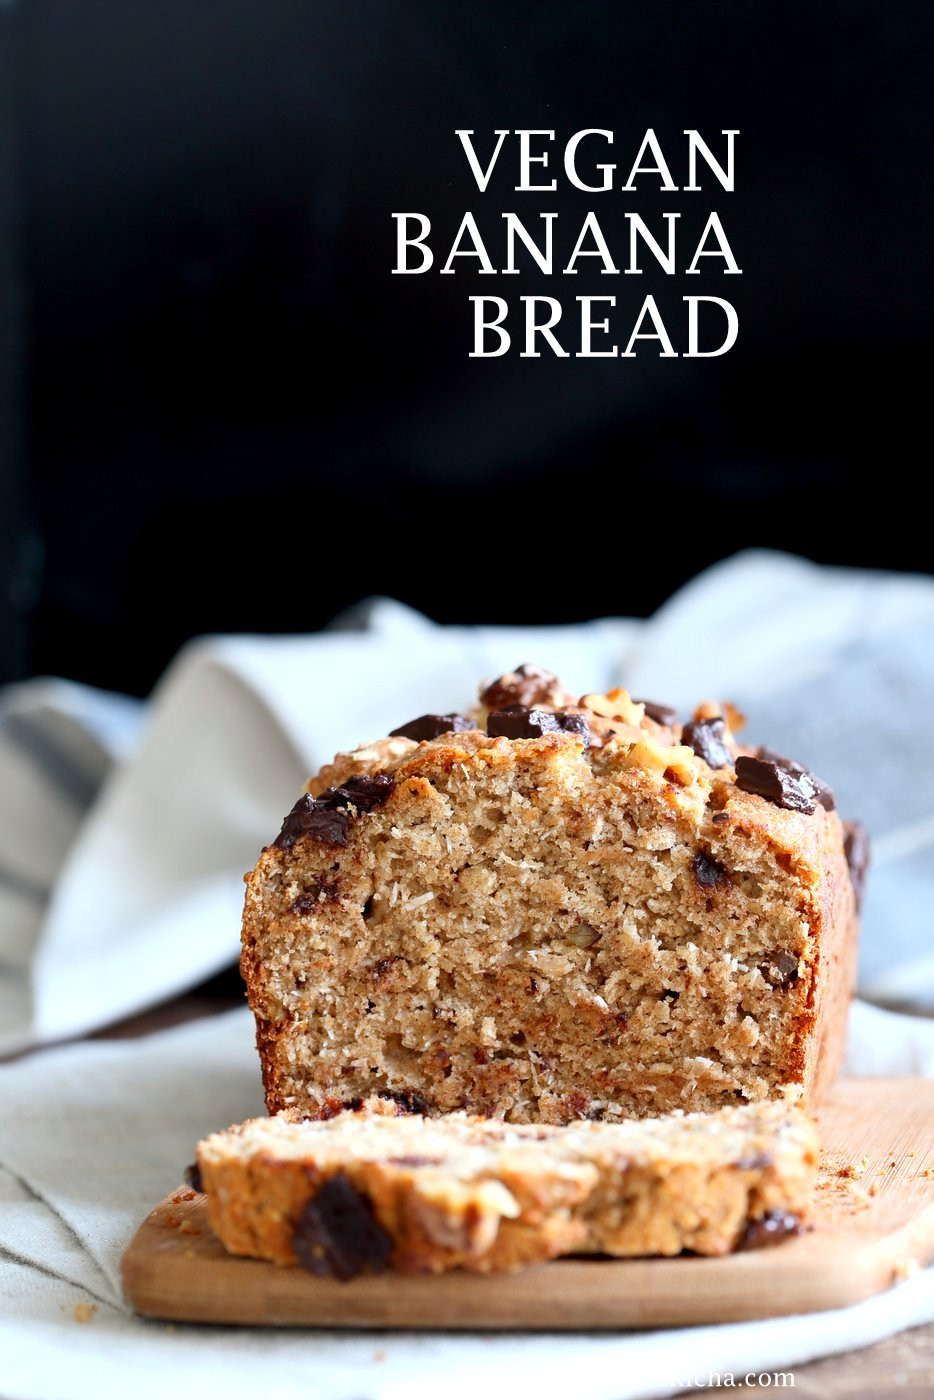 Is There Vegan Bread  Vegan Banana Bread with Toasted Walnuts and Coconut